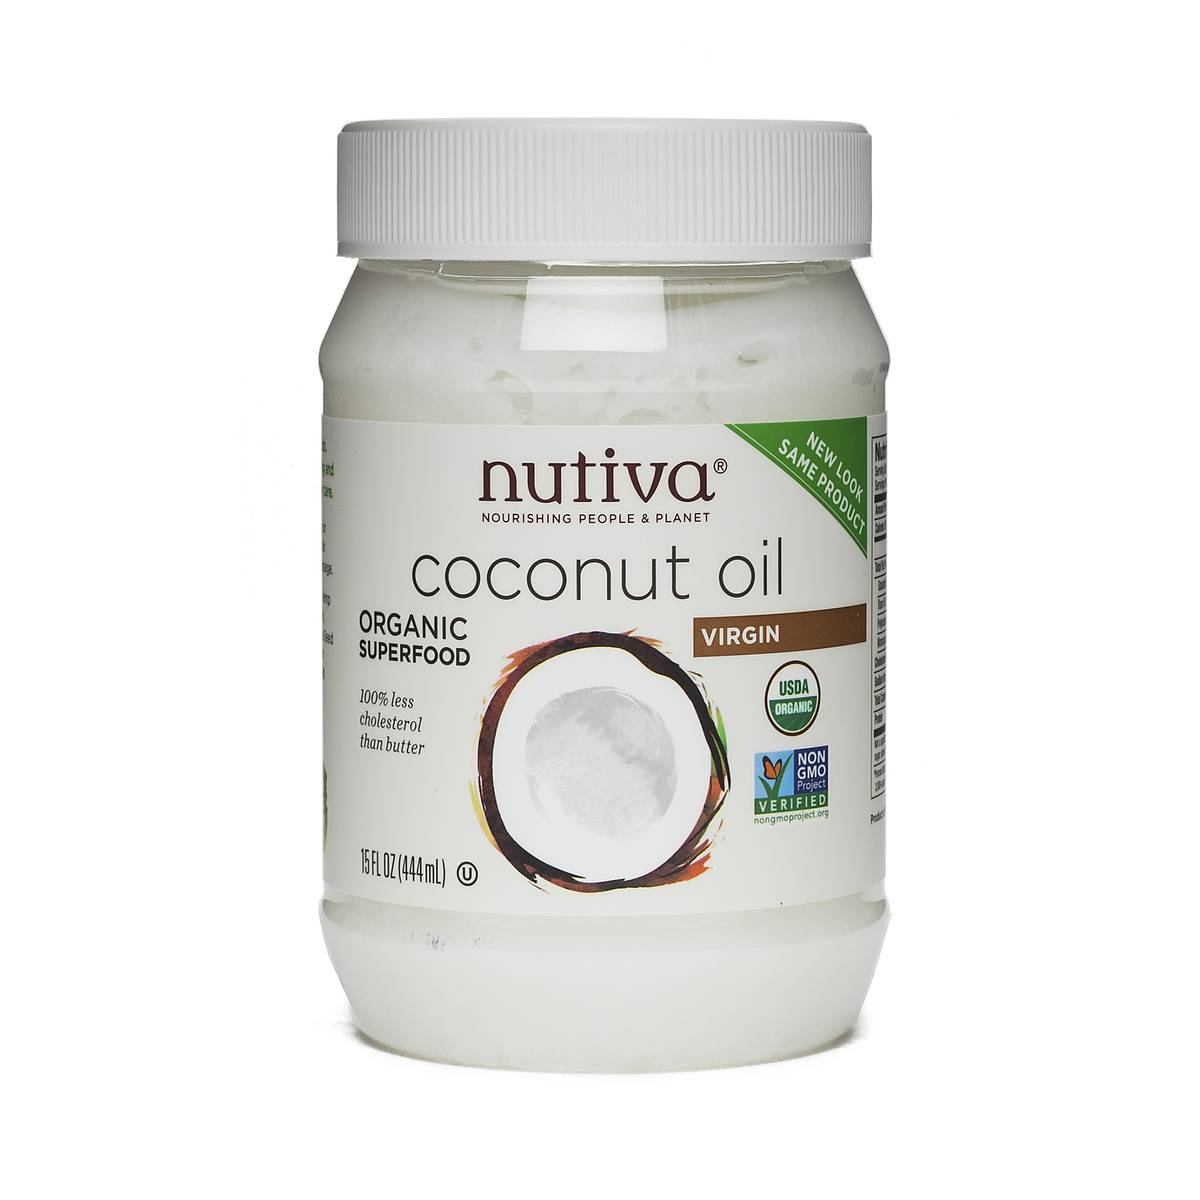 Nutiva Organic Virgin Coconut Oil - Thrive Market